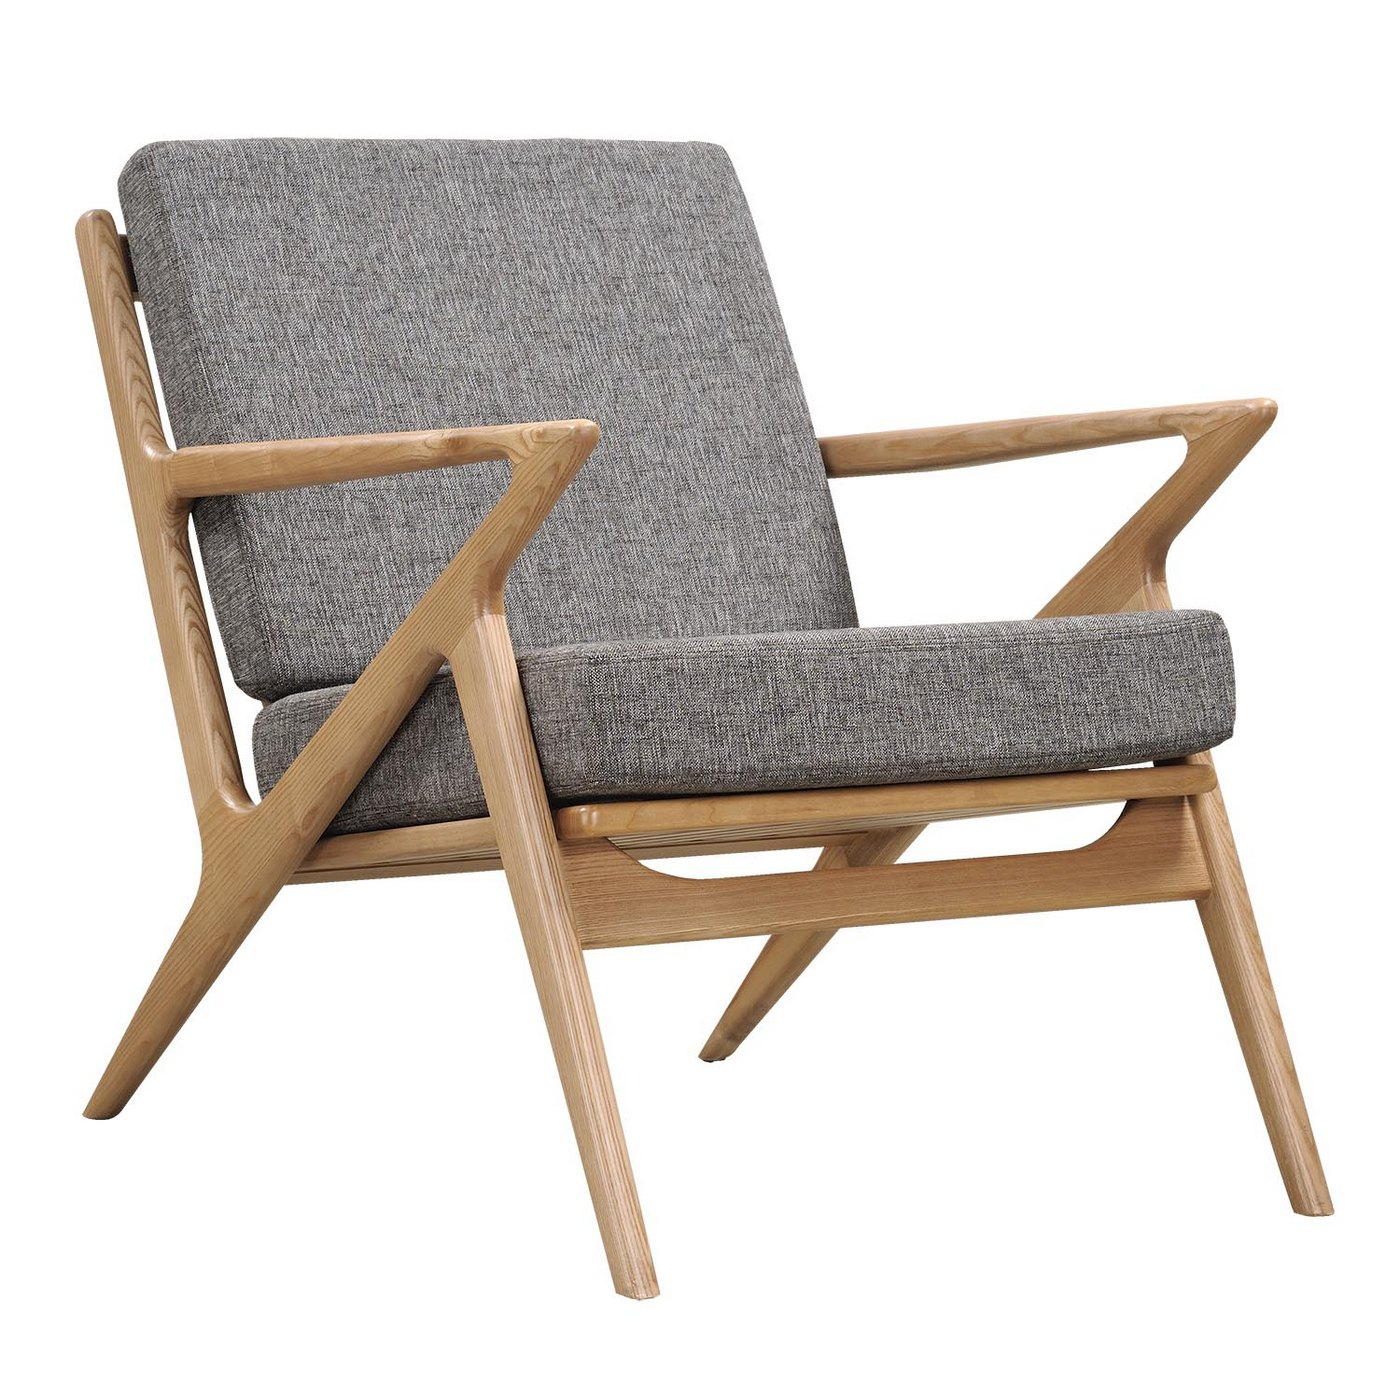 Mid-Century Modern Wood Chair